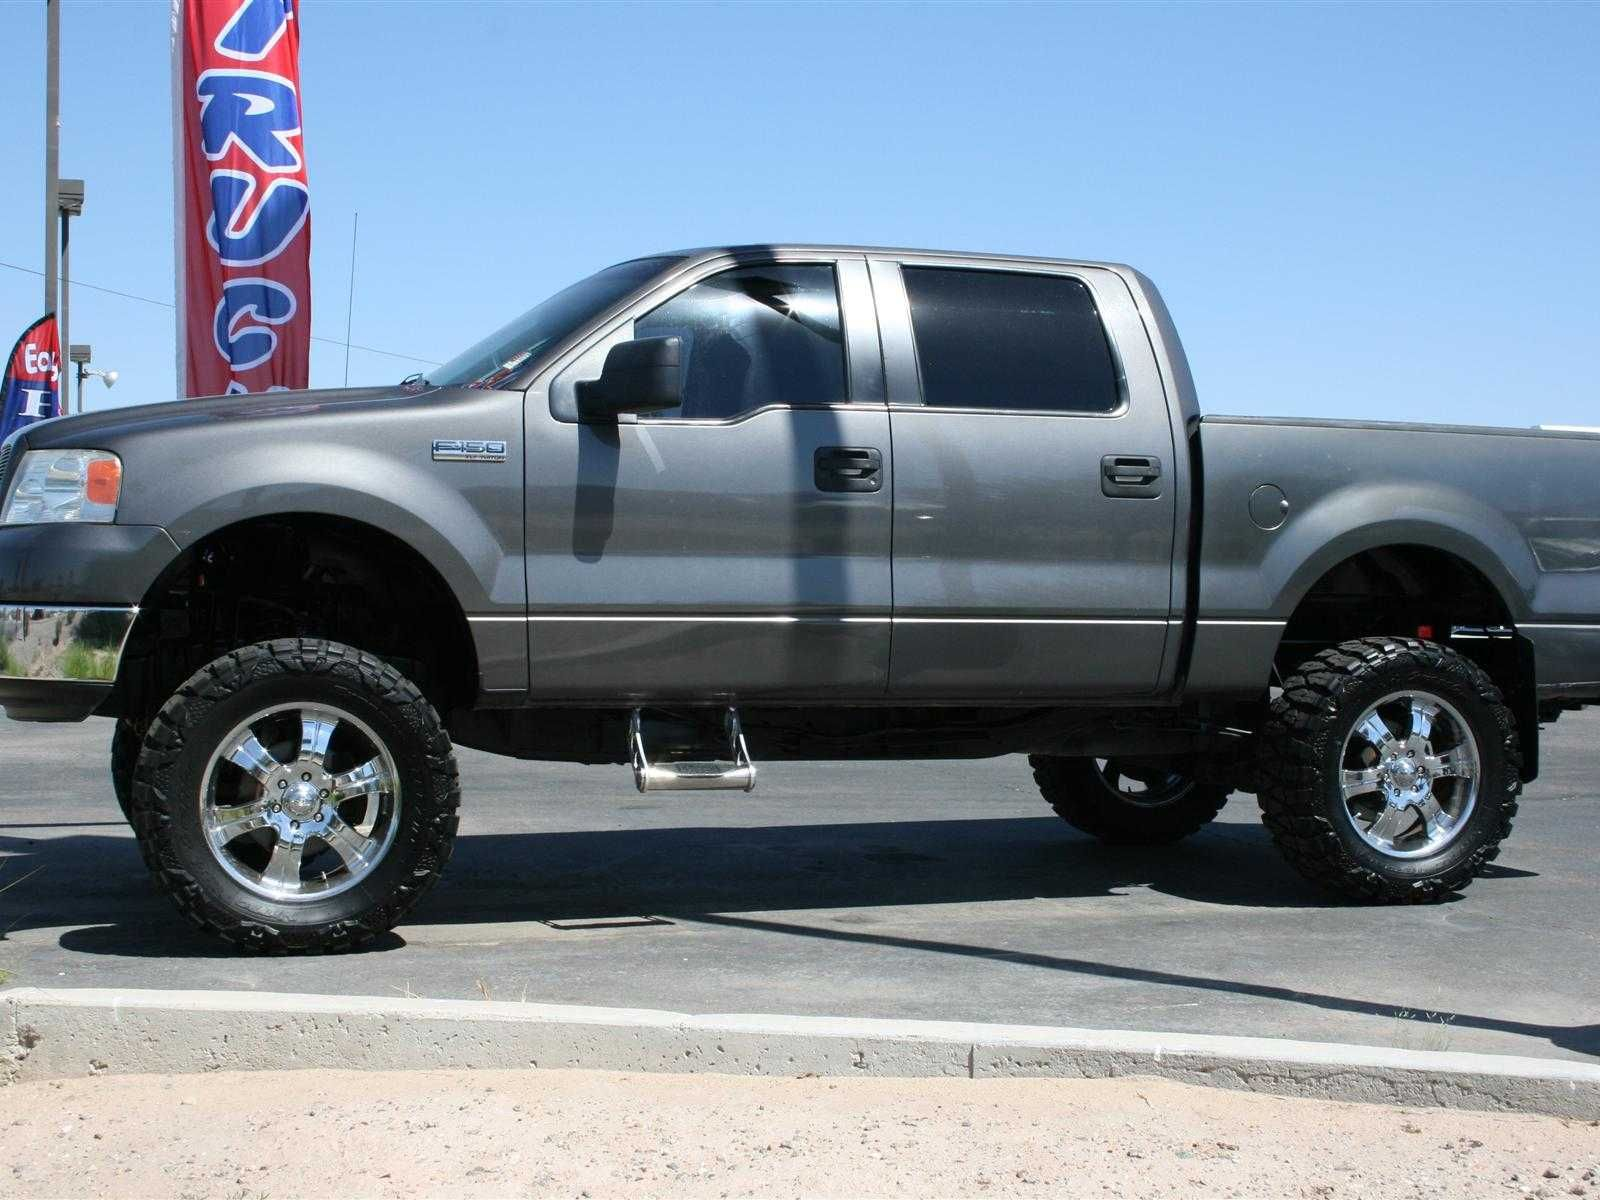 Ford F150 Forum Topix Ford f150, Built ford tough